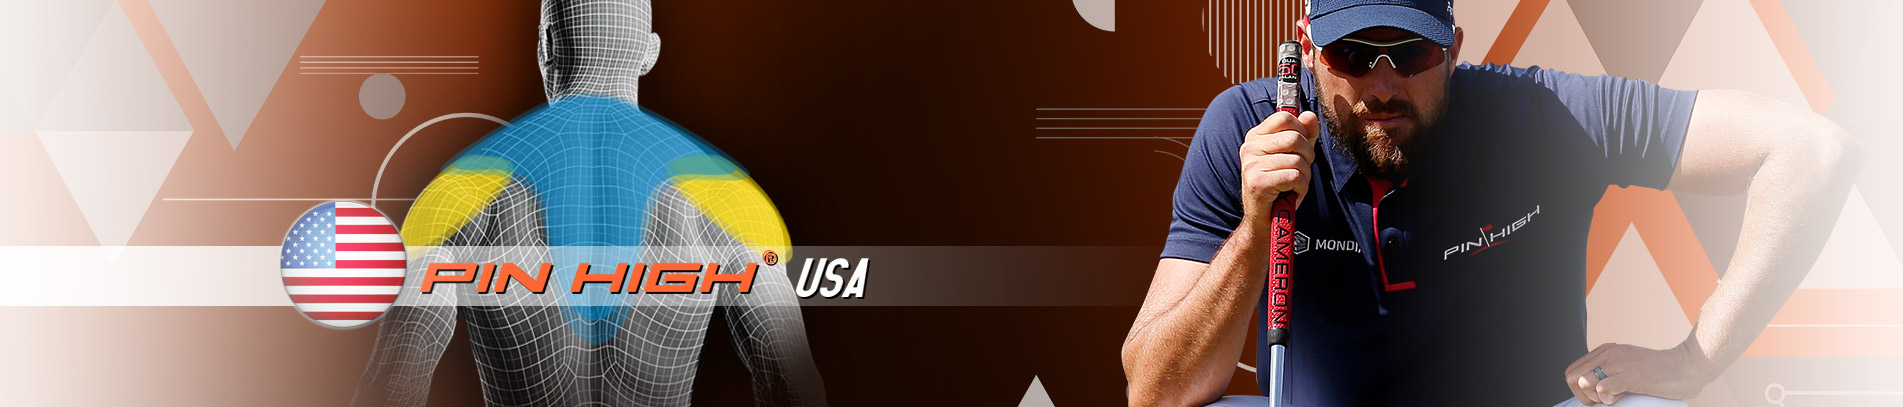 PIN HIGH USA